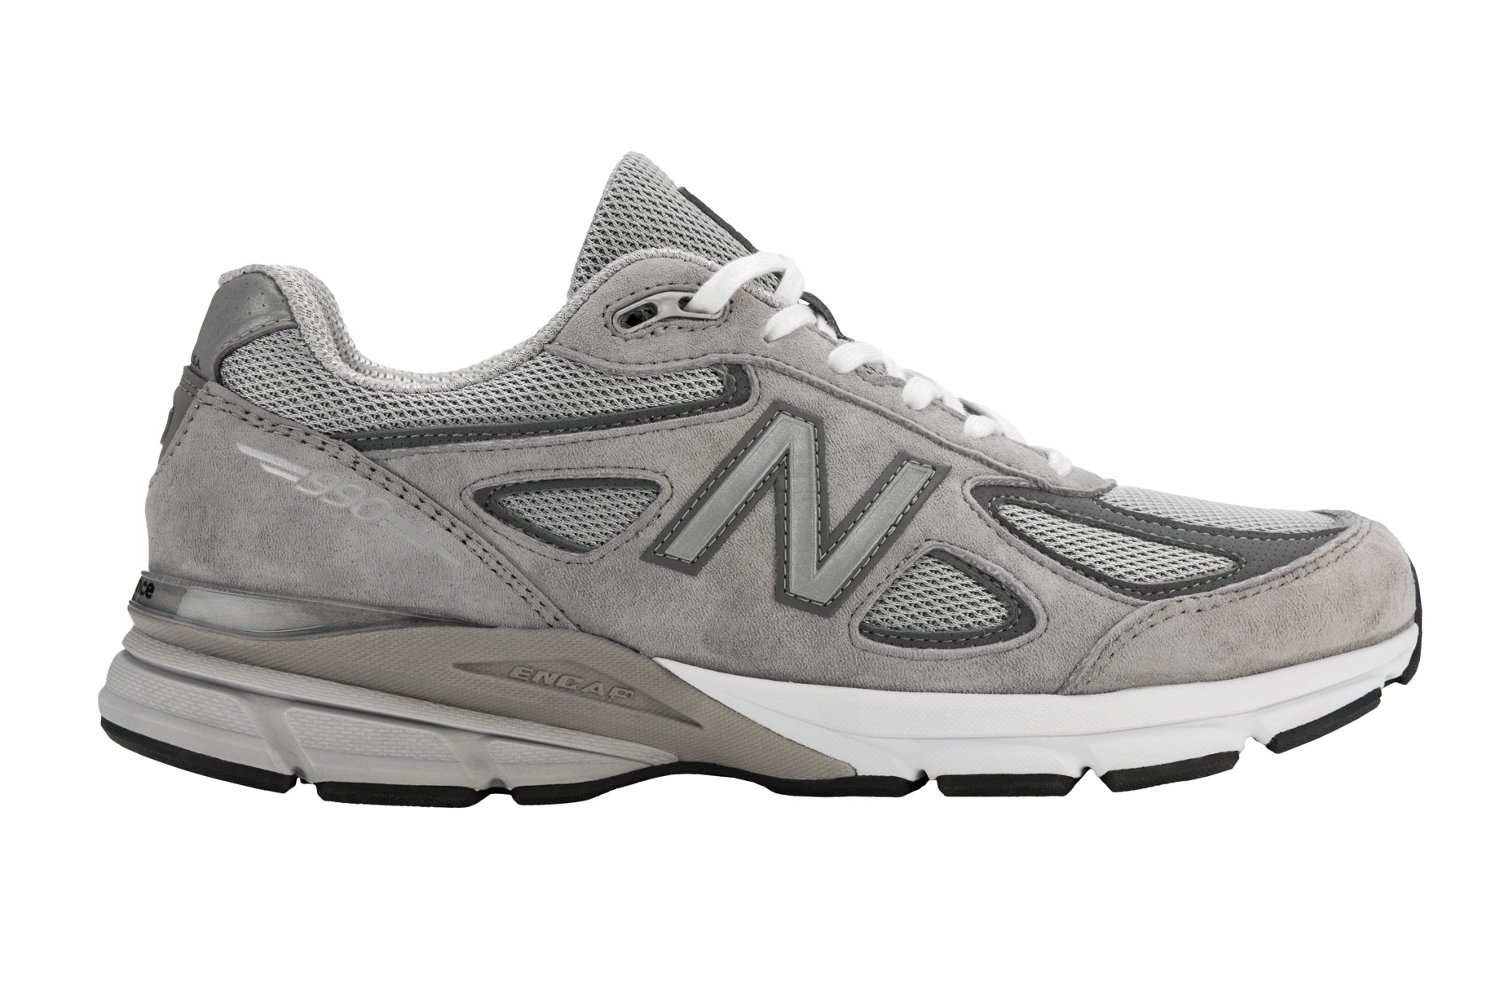 e0c3af7860e2 Display product reviews for New Balance Men s 990v4 Running Shoes